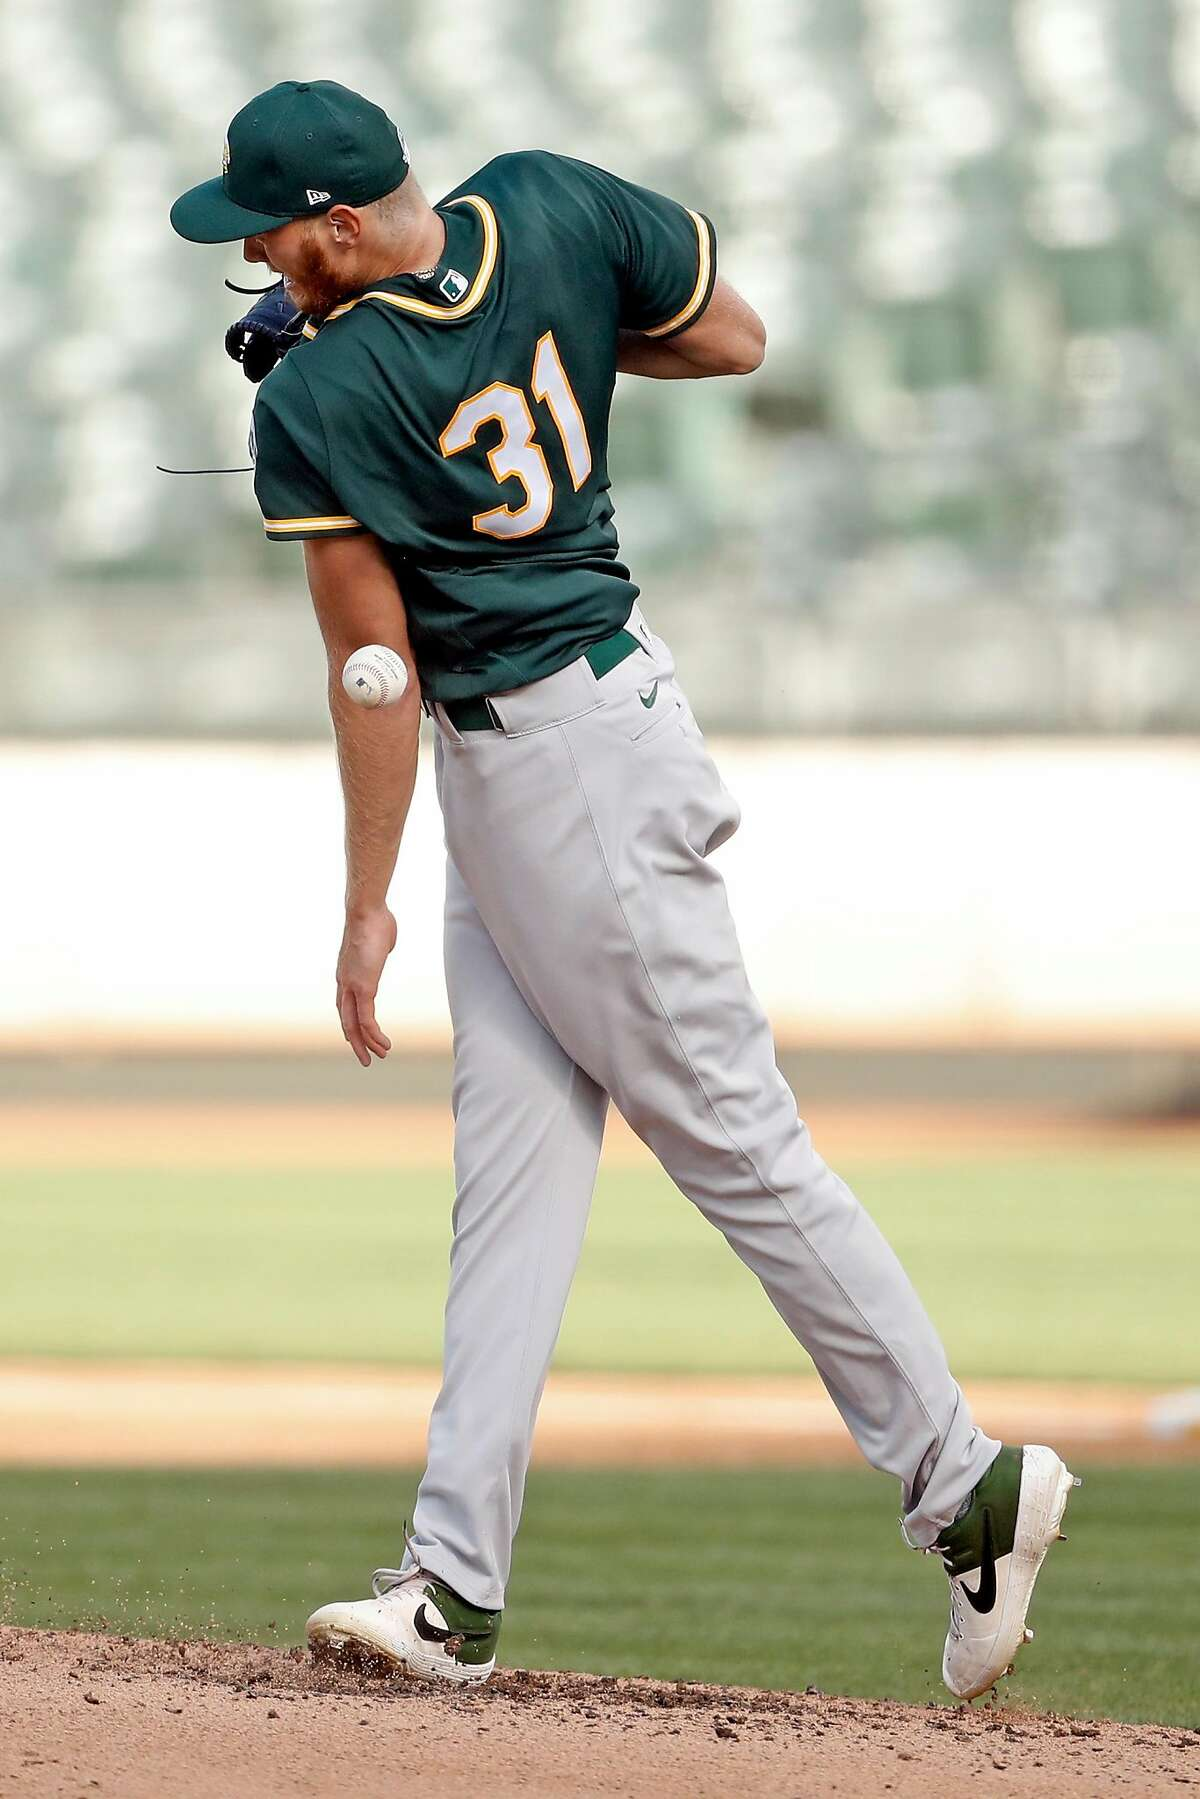 Oakland Athletics' pitcher A.J. Puk gets hit in the arm by a grounder off the bat of Robbie Grossman during intrasquad simulated game at Oakland Coliseum in Oakland, Calif., on Monday, July 13, 2020.Puk is on pace to join the A's as a reliever next week, general manager David Forst said on a conference call Thursday.